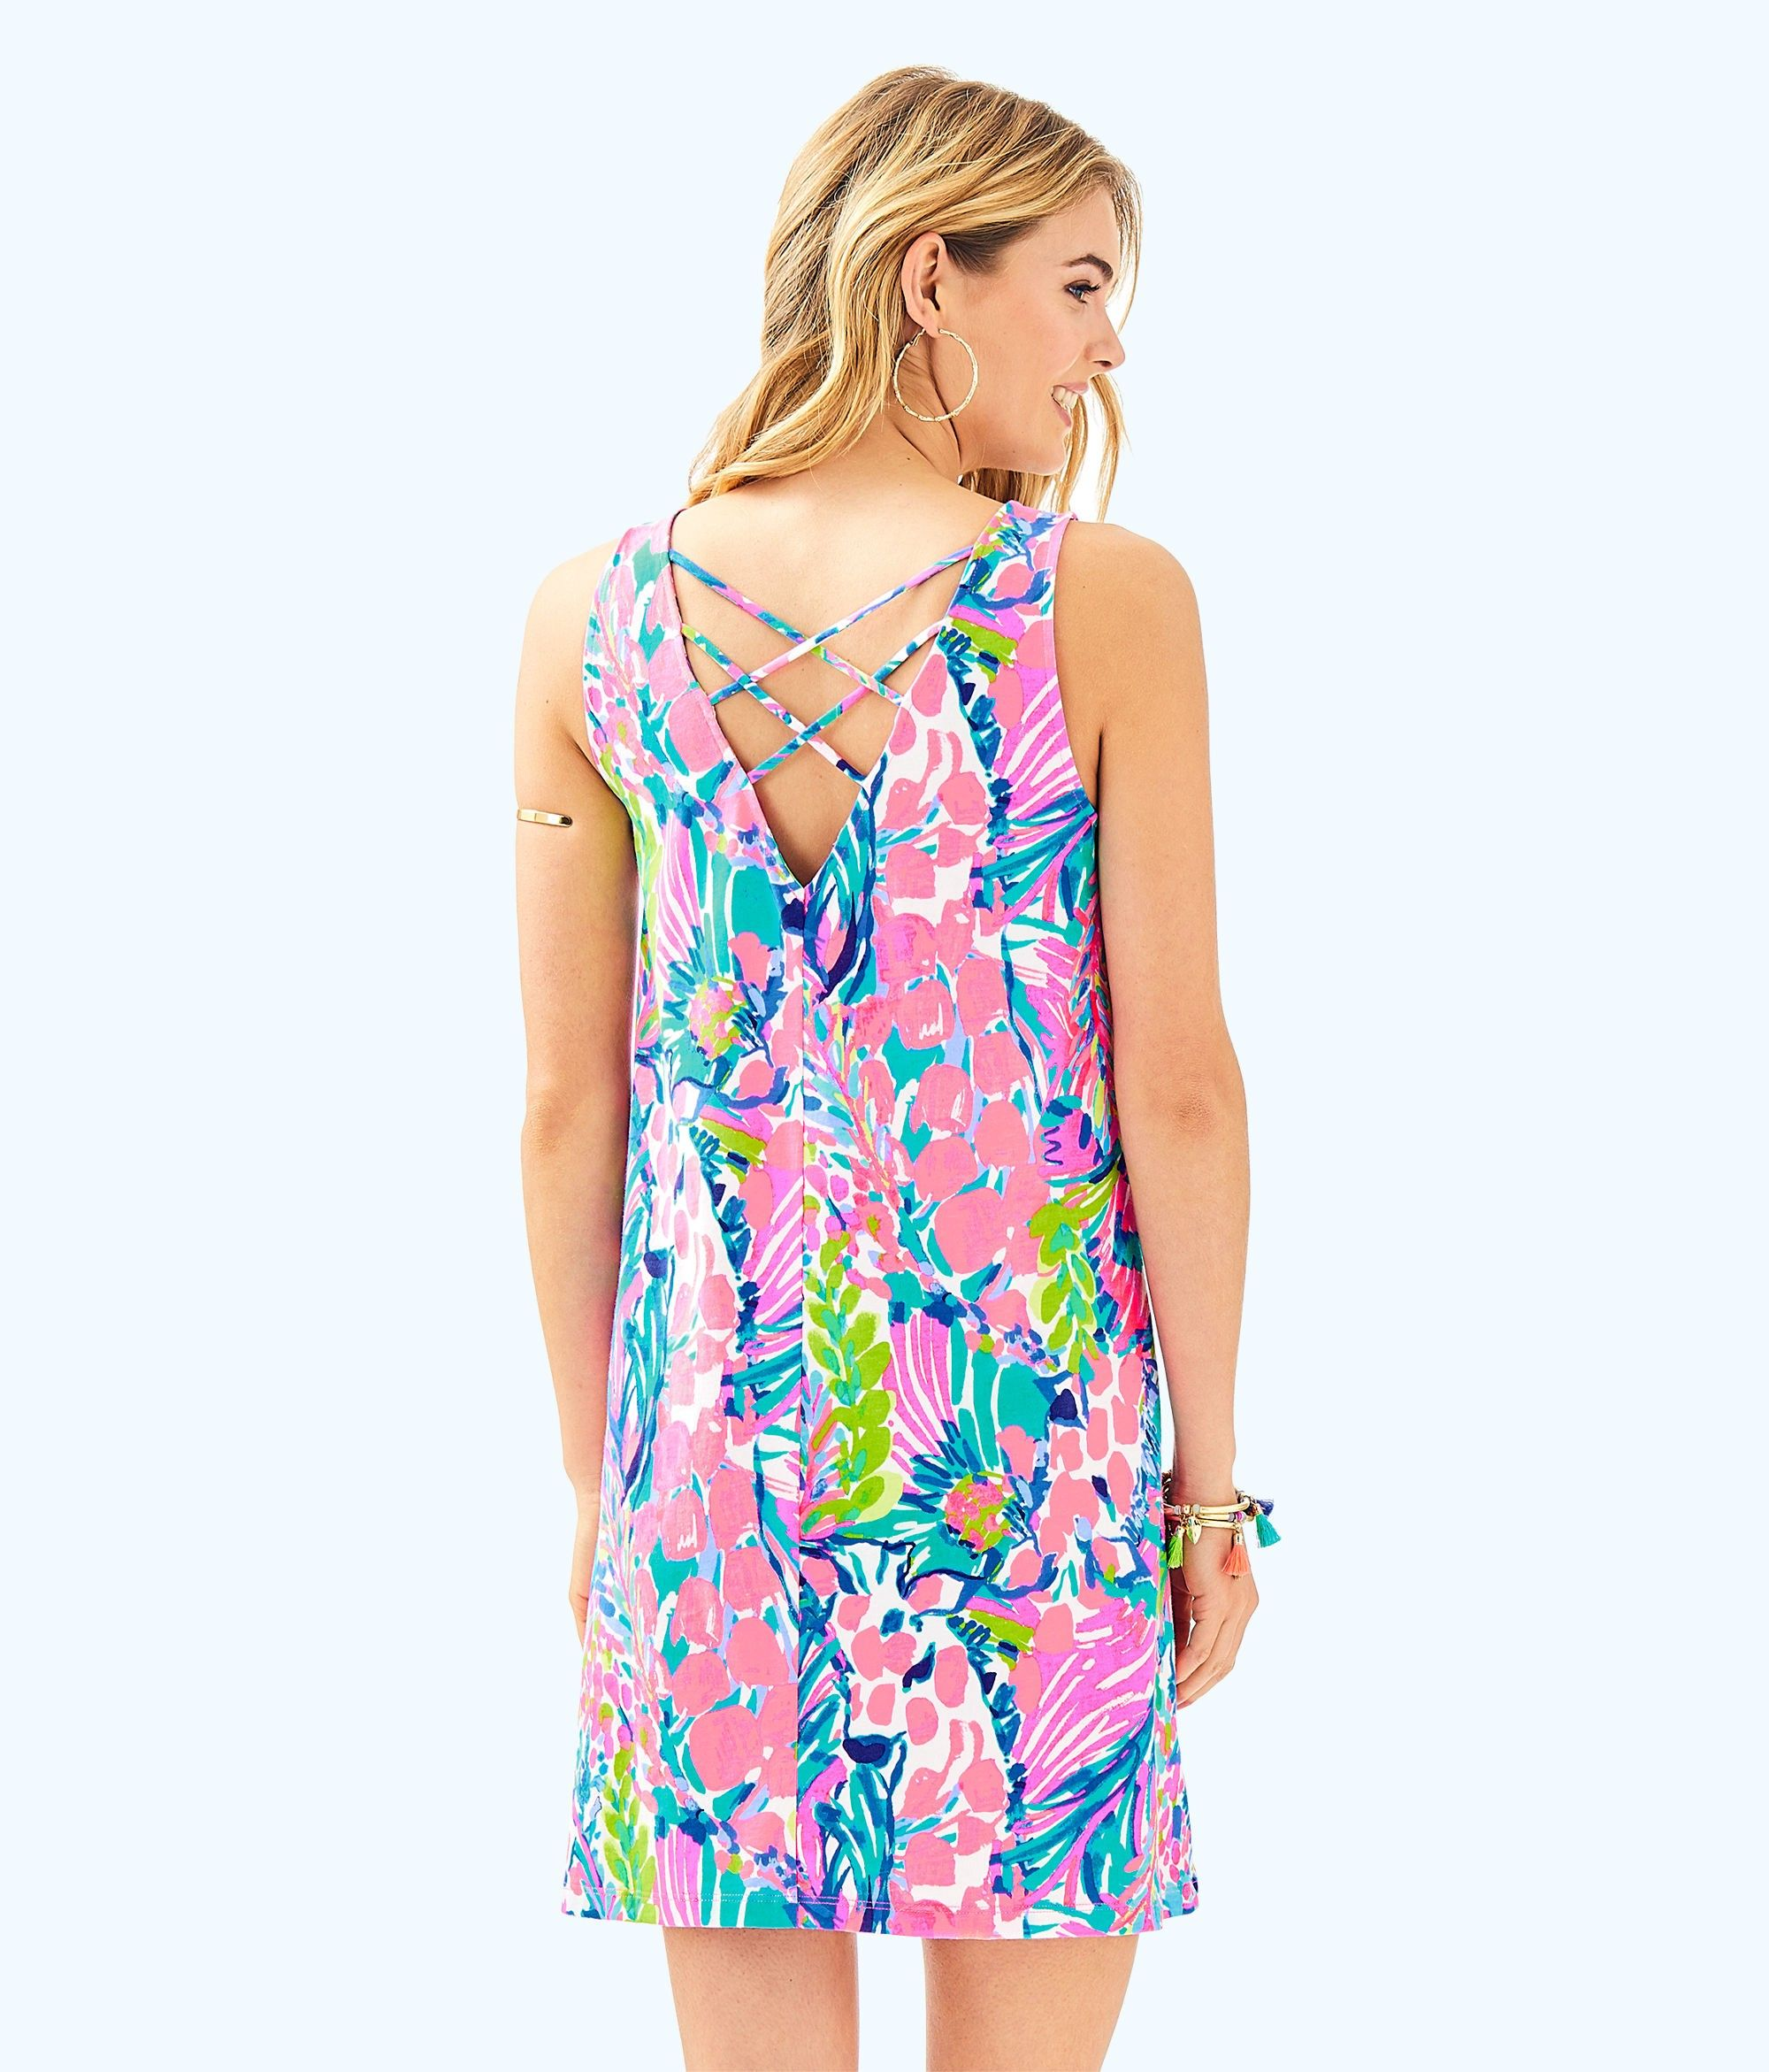 7a2b3e86f80659 Lilly Pulitzer Kristen Dress - XS | Products | Dresses, Casual ...